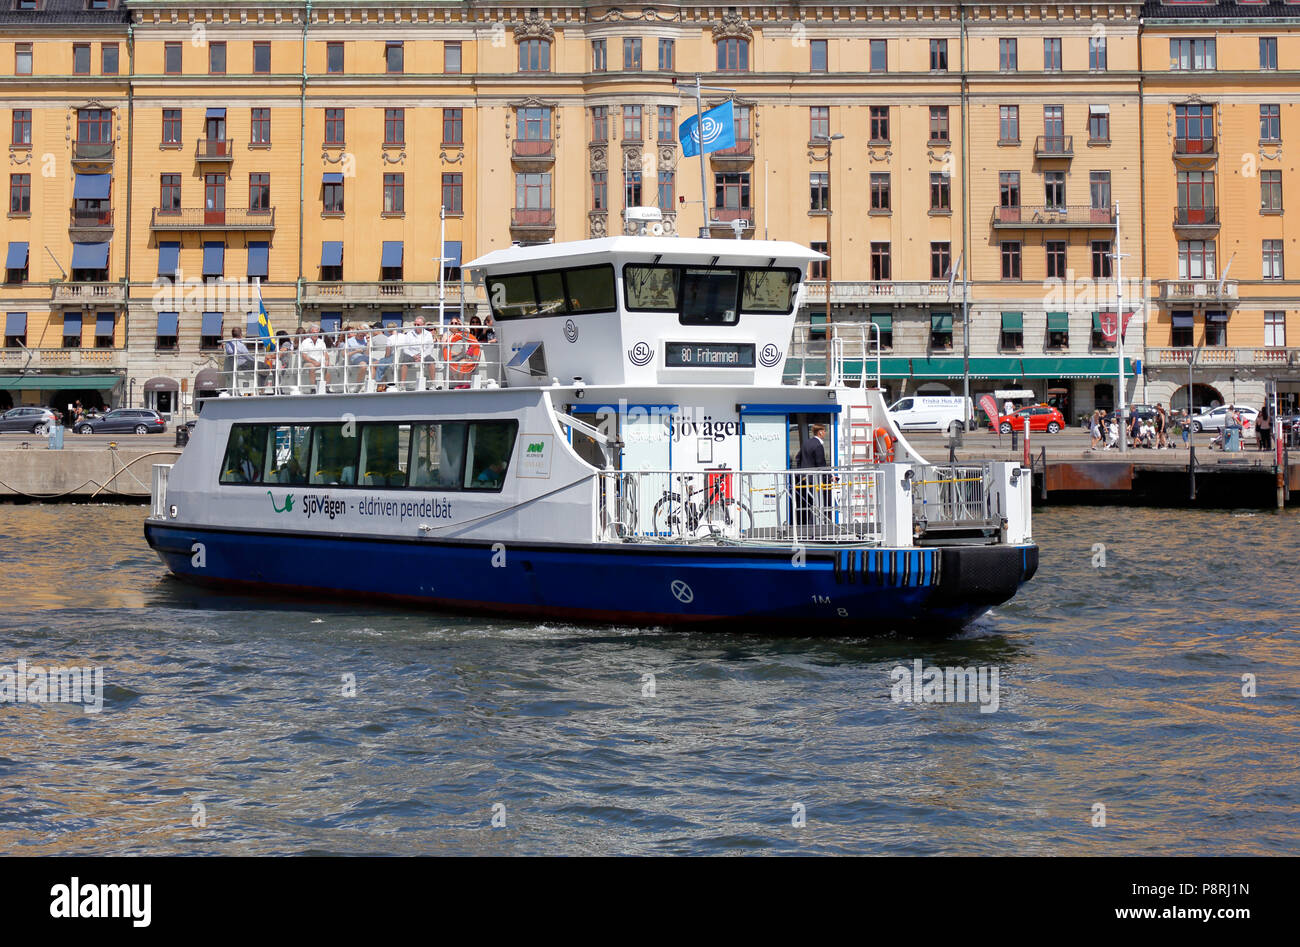 Stockholm, Sweden - July 12, 2018: The electric powered shuttle public transportation ferry Sjovagen in service on line 80 for SL, has departured from Stock Photo